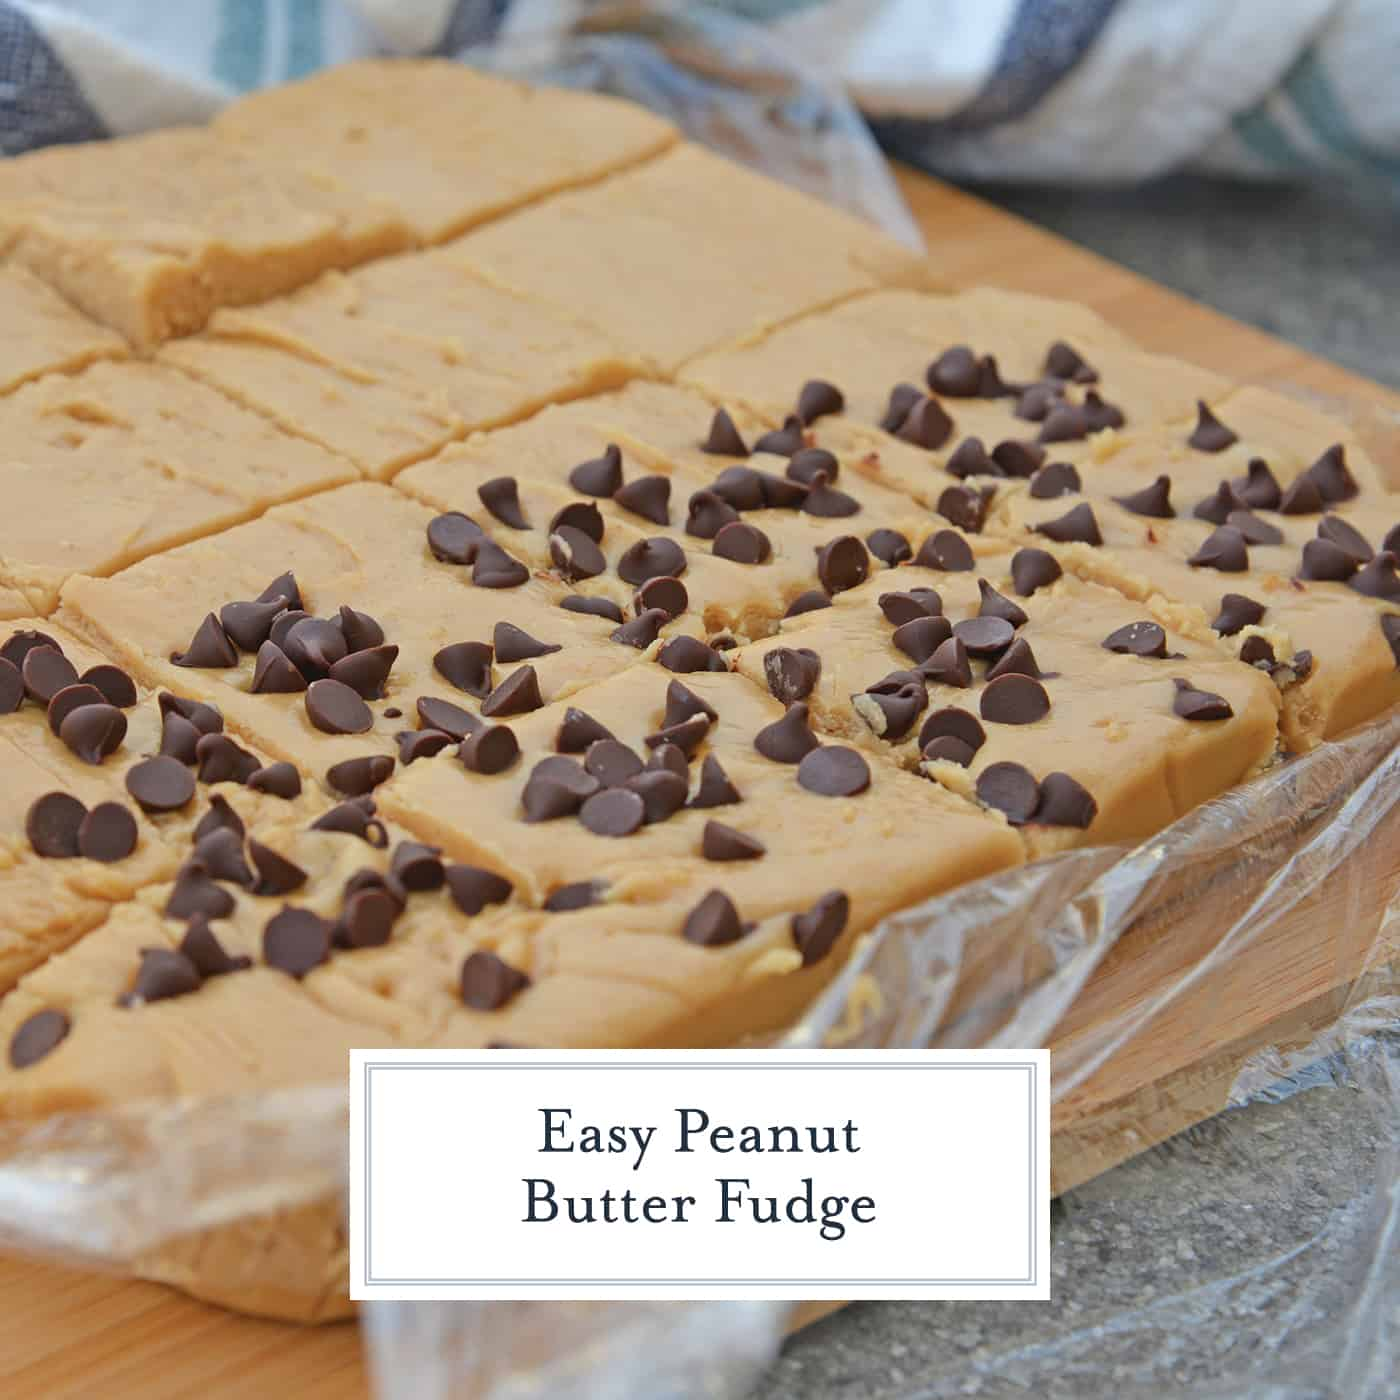 Easy Peanut Butter Fudge is rich, decadent and perfectly creamy. Simple instructions for how to make fudge in just 10 minutes! #peanutbutterfudge #easyfudge #fudge www.savoryexperiments.com